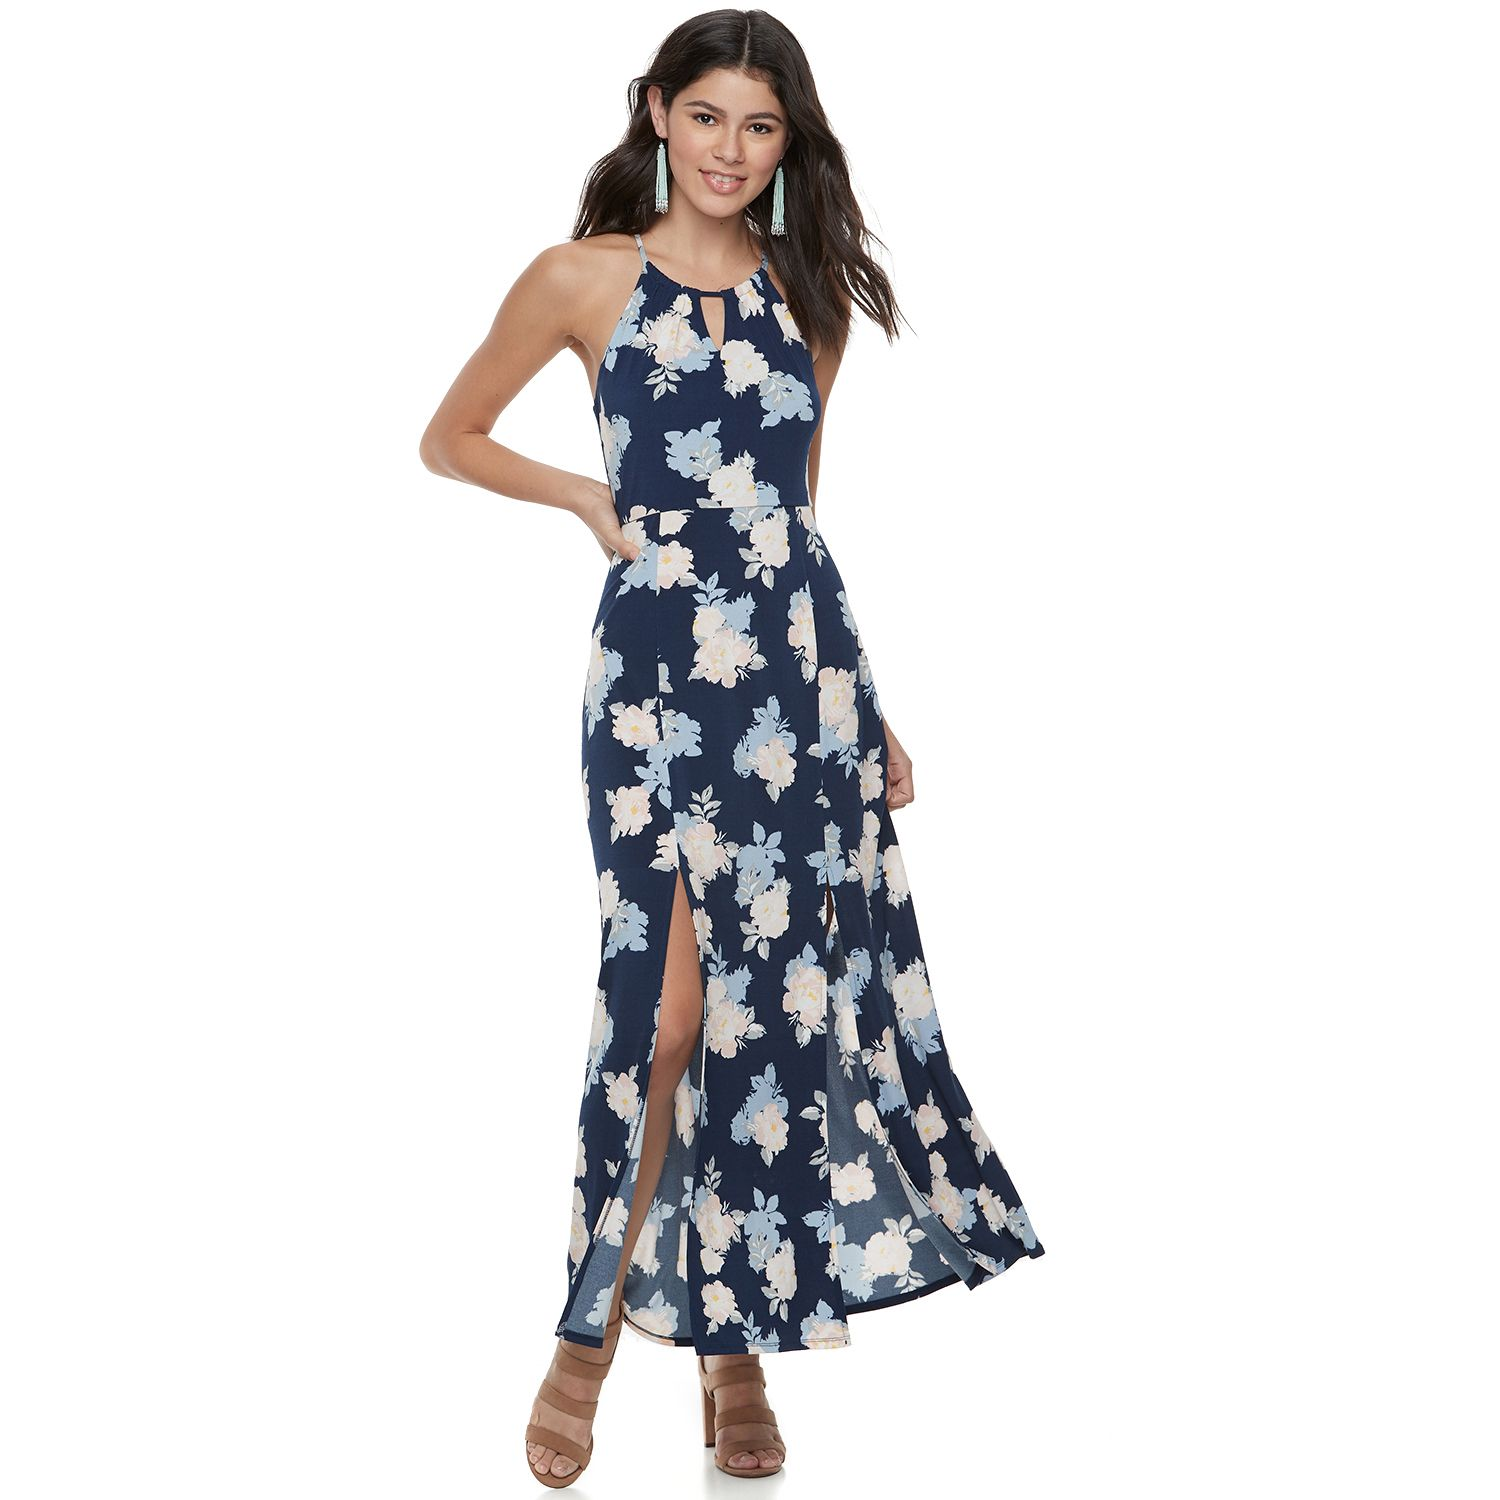 Juniorsu0027 Candieu0027s® Print Halter Maxi Dress